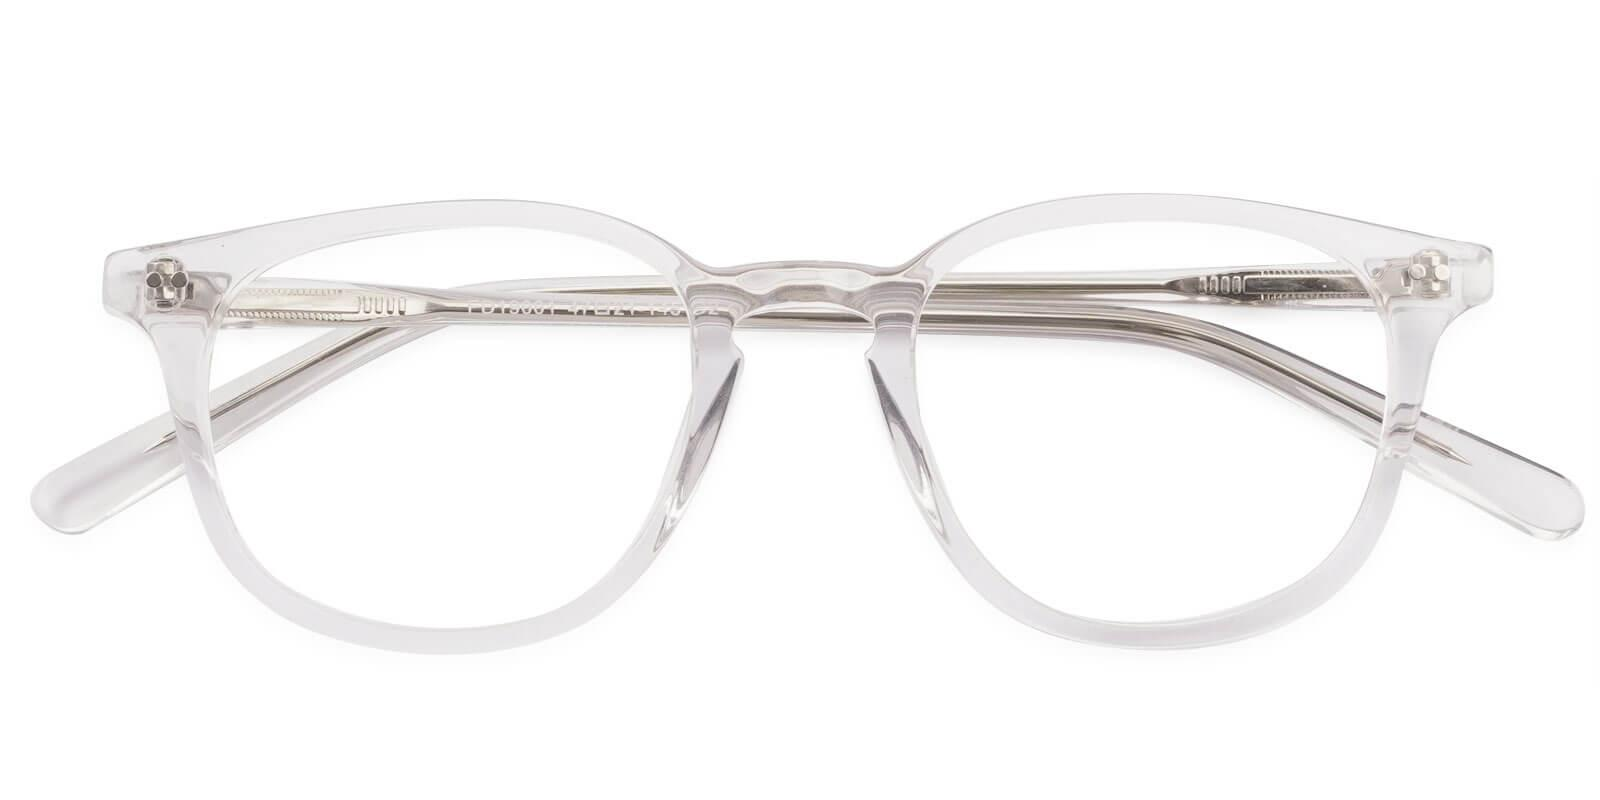 Venus Translucent Acetate Eyeglasses , UniversalBridgeFit Frames from ABBE Glasses